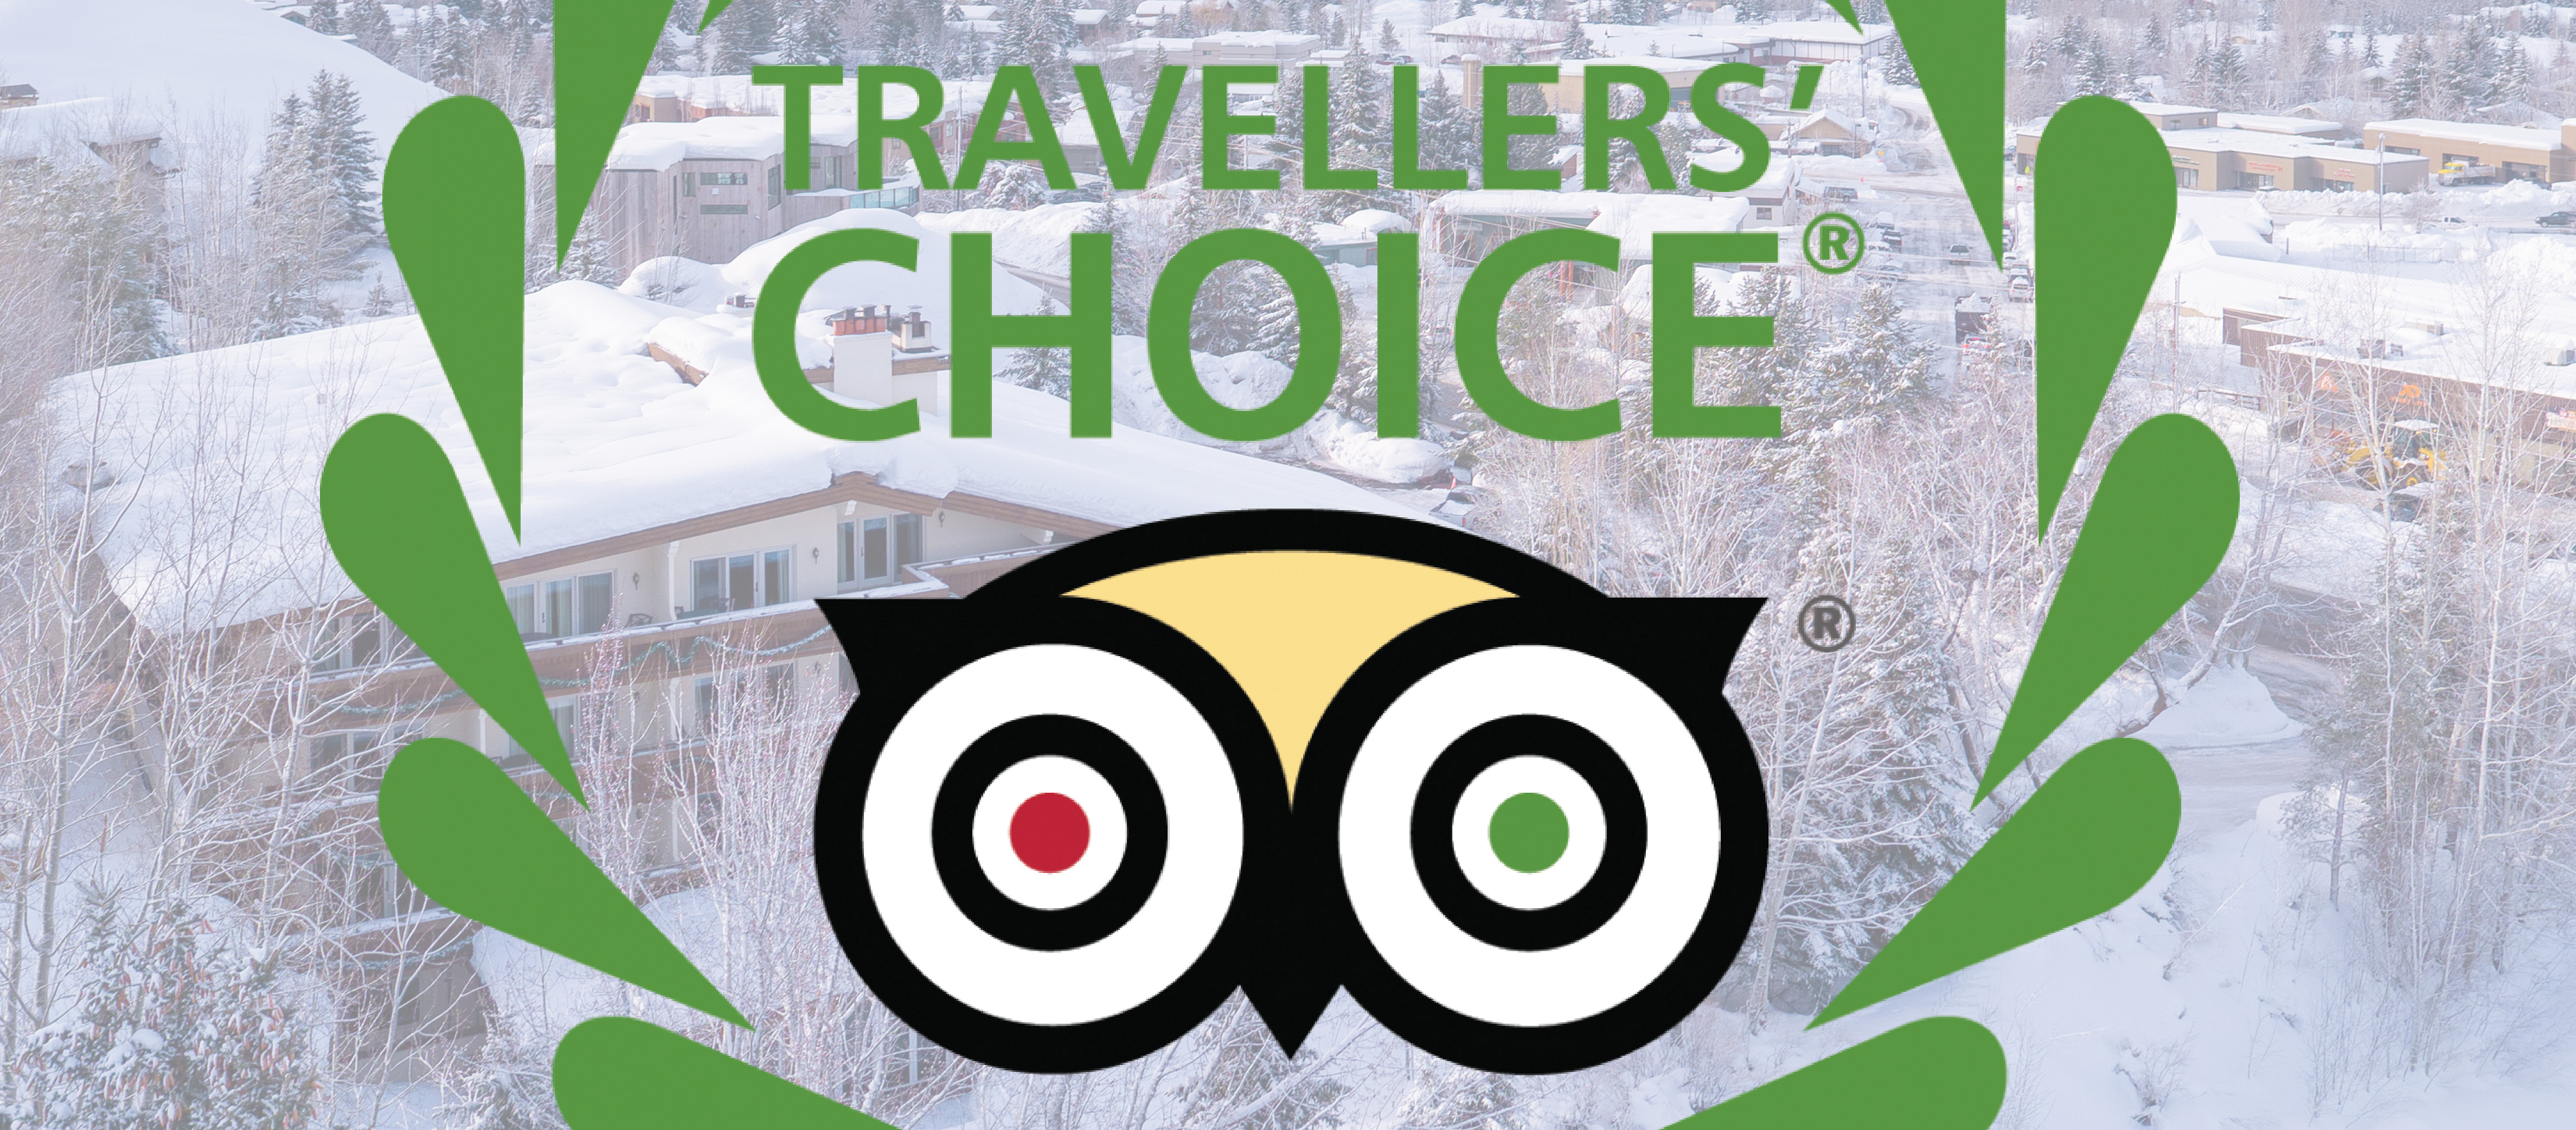 Trip Advisor Traveler's Choice logo